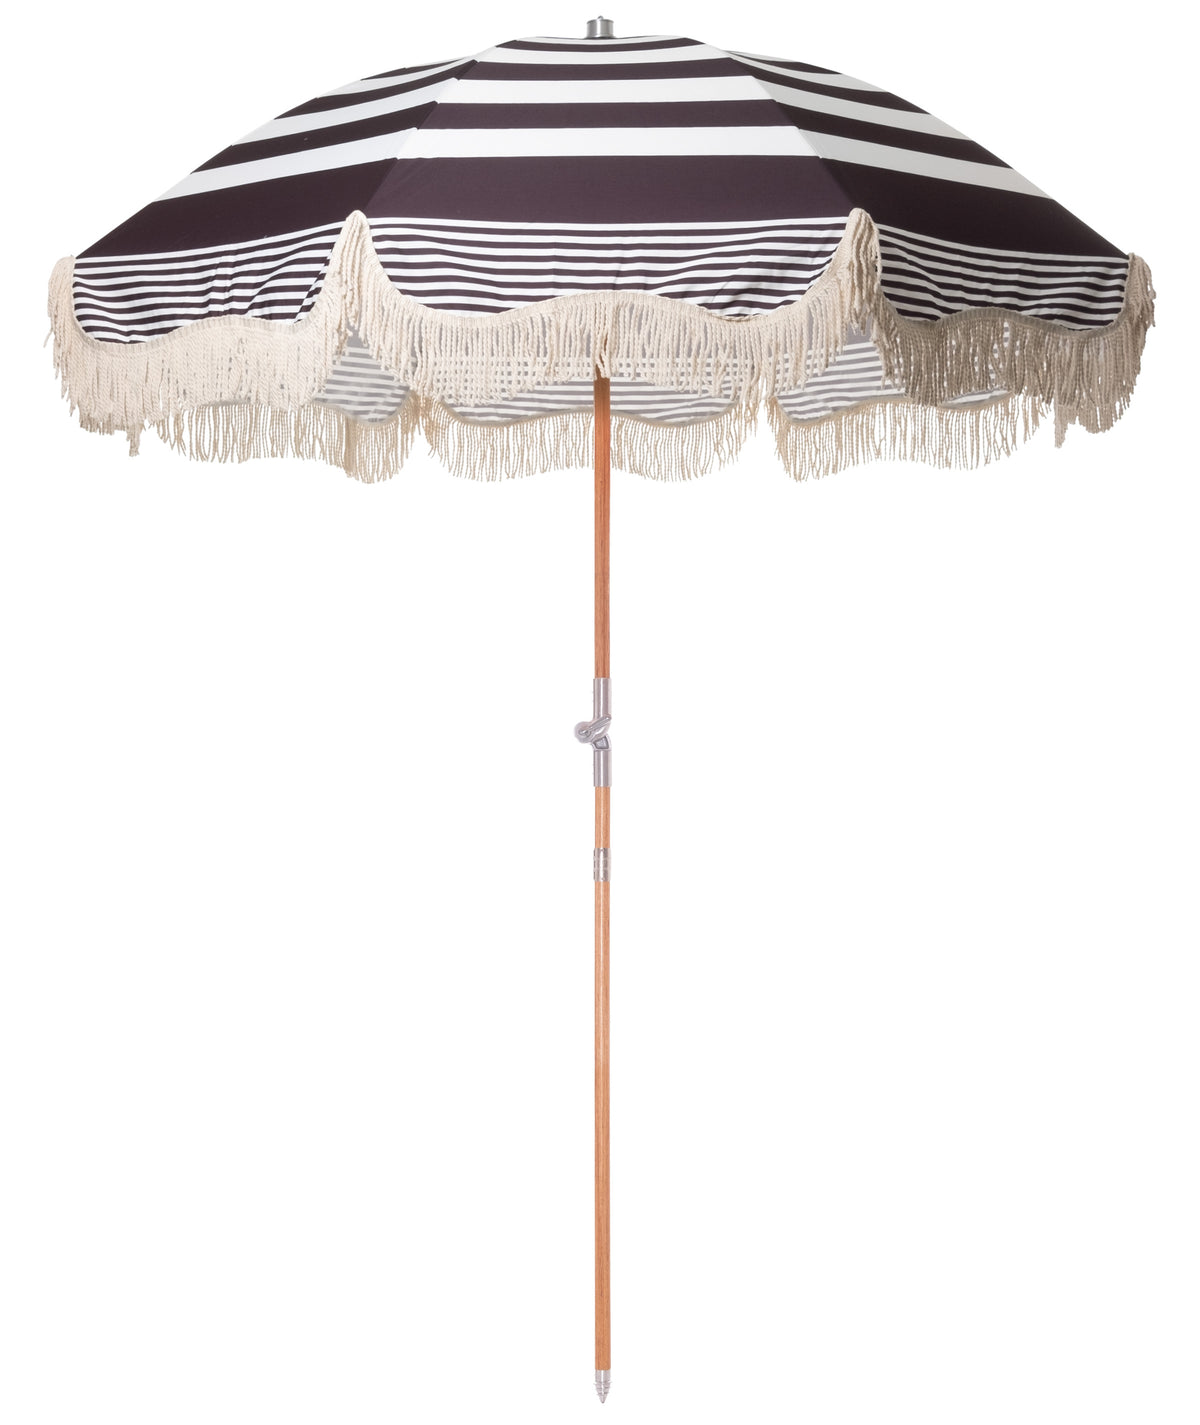 The Premium Beach Umbrella - Black Riviera Stripe - Business & Pleasure Co